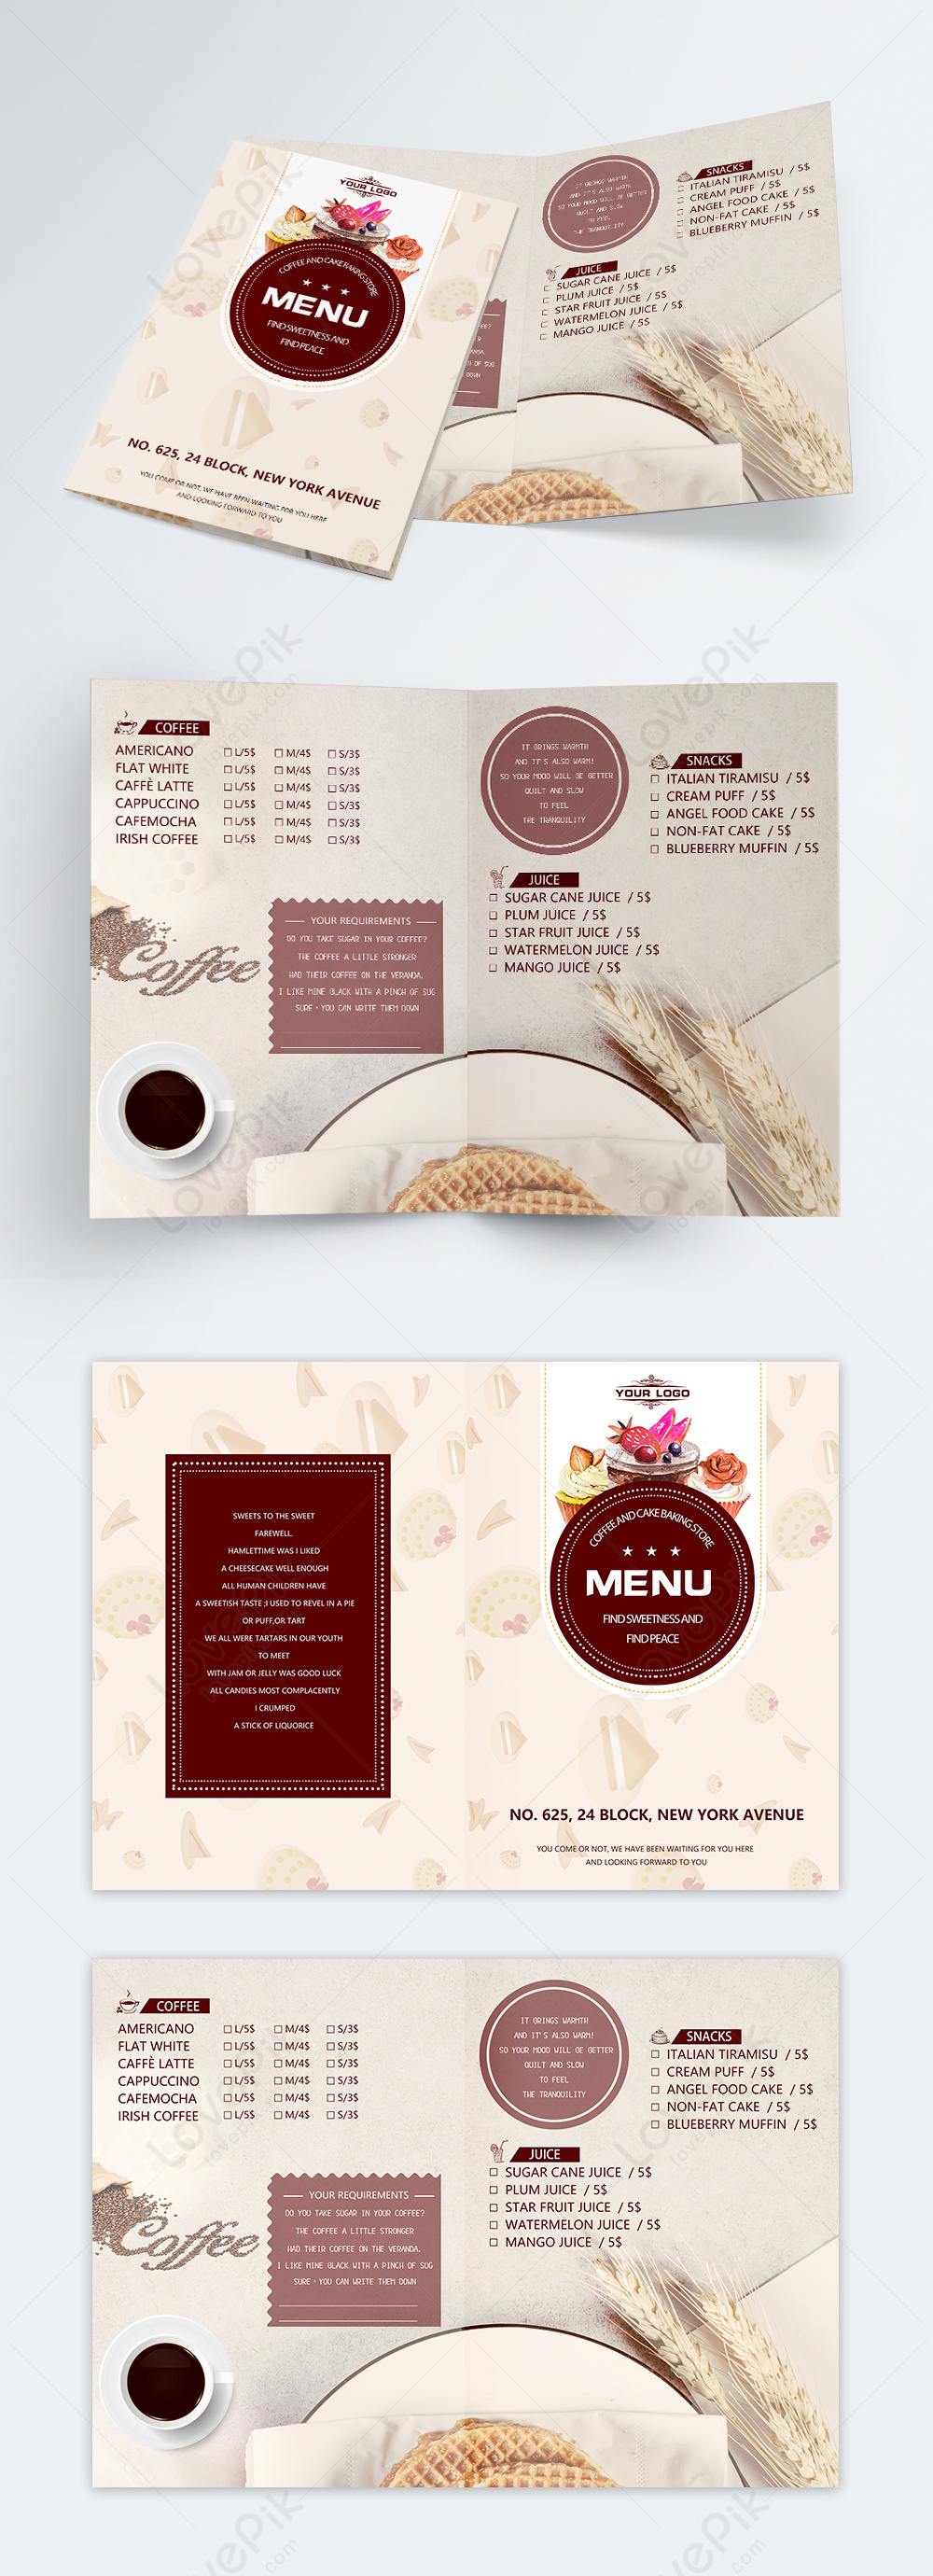 Menu Template Download from img.lovepik.com